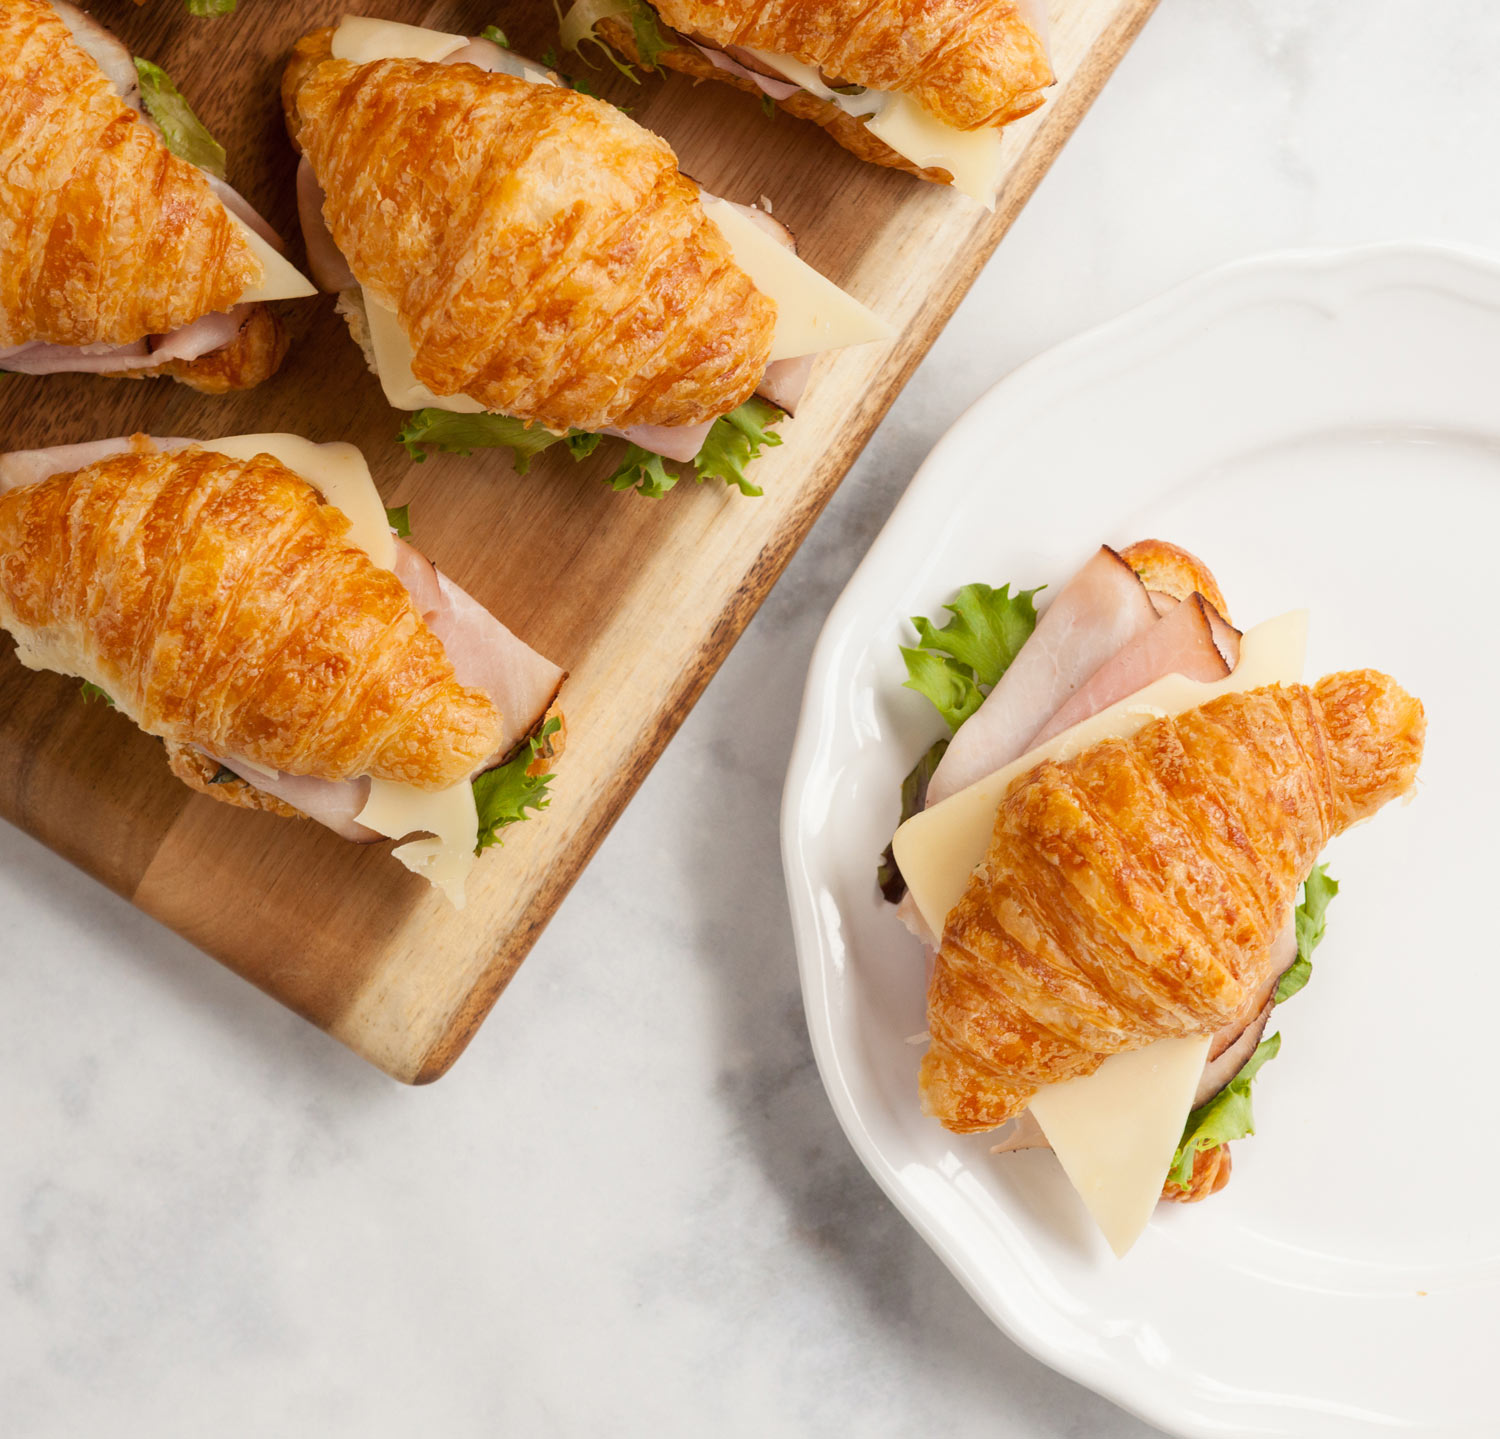 Food_Photography__Catering_trays_sandwhiches_to_go_turkey_ham_cheese_lettuce_fresh_baked.jpg